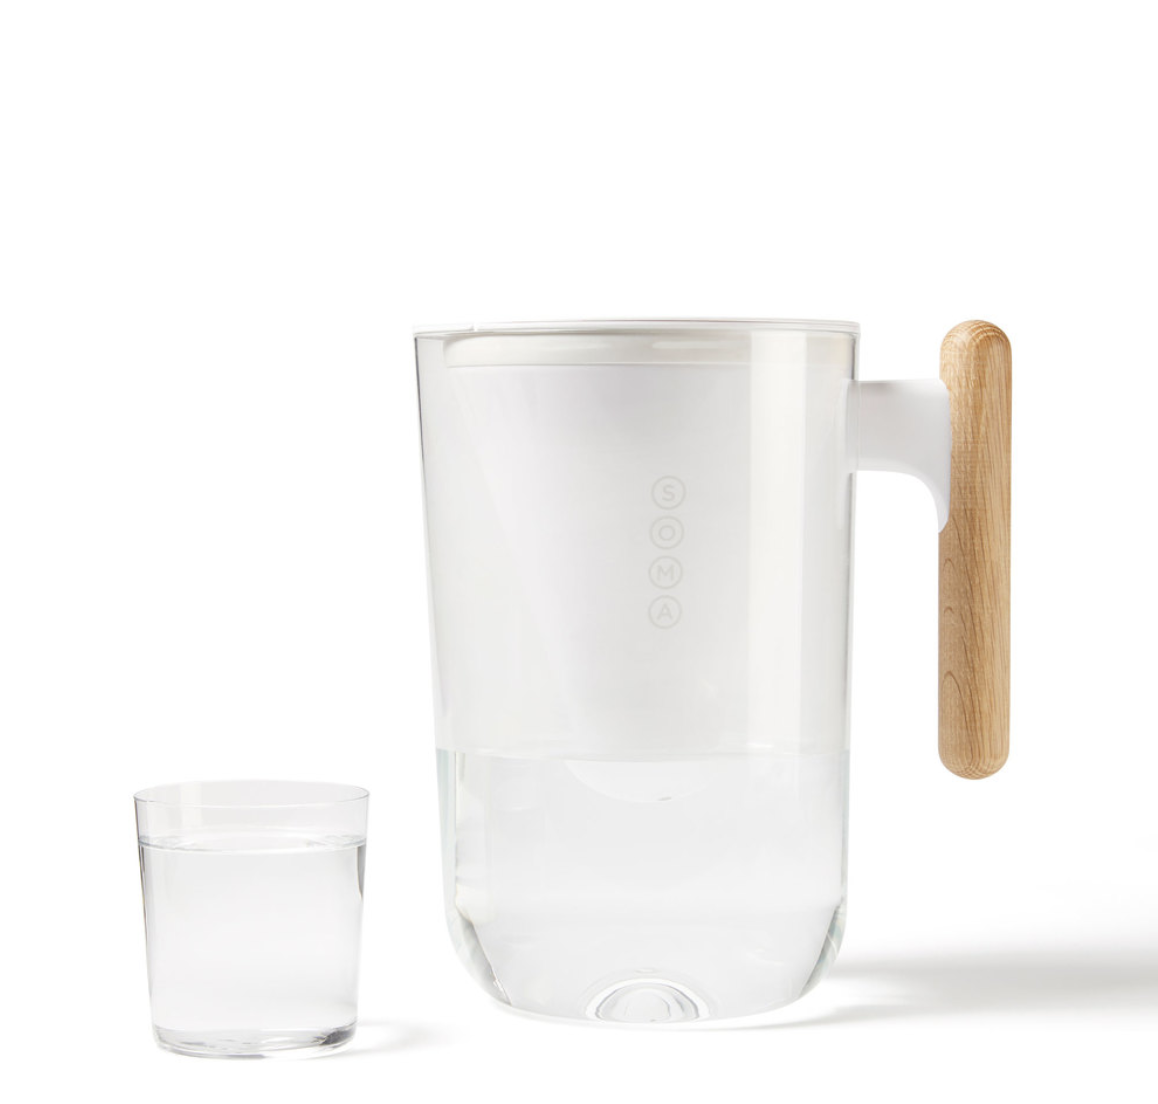 Soma 10-Cup Filtered Water Pitcher